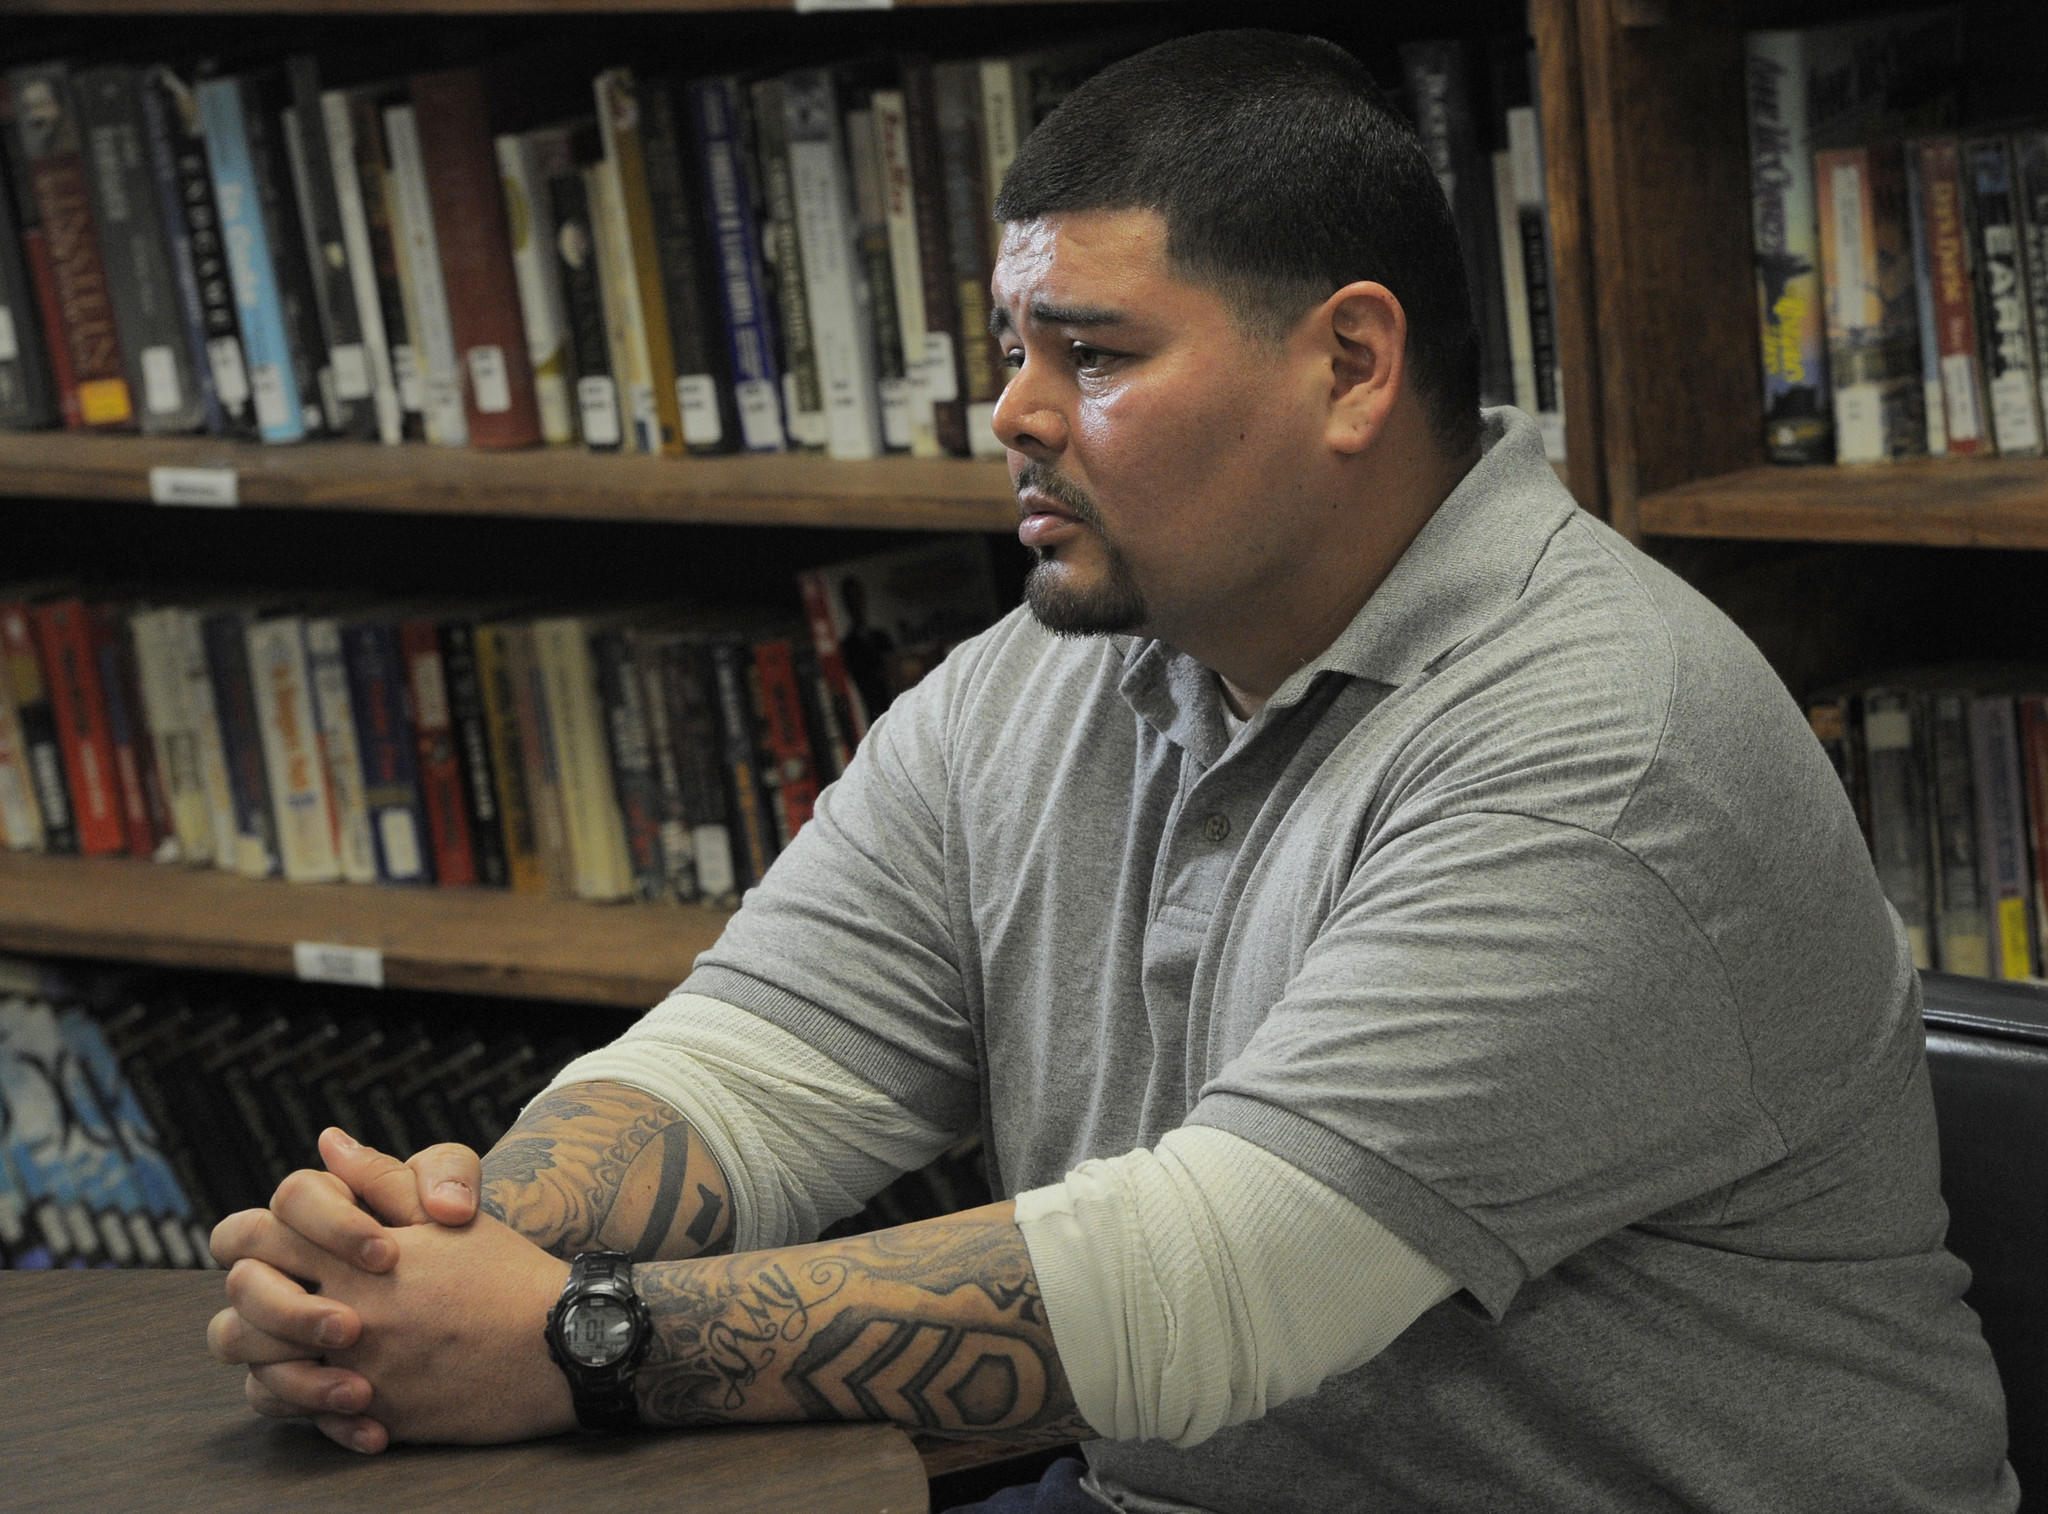 Christian Rojas, 33, who is nearing release from the Eastern Correctional Institute (ECI), is a veteran of the Iraq war. Rojas left the Army as a staff sergeant in 2010.